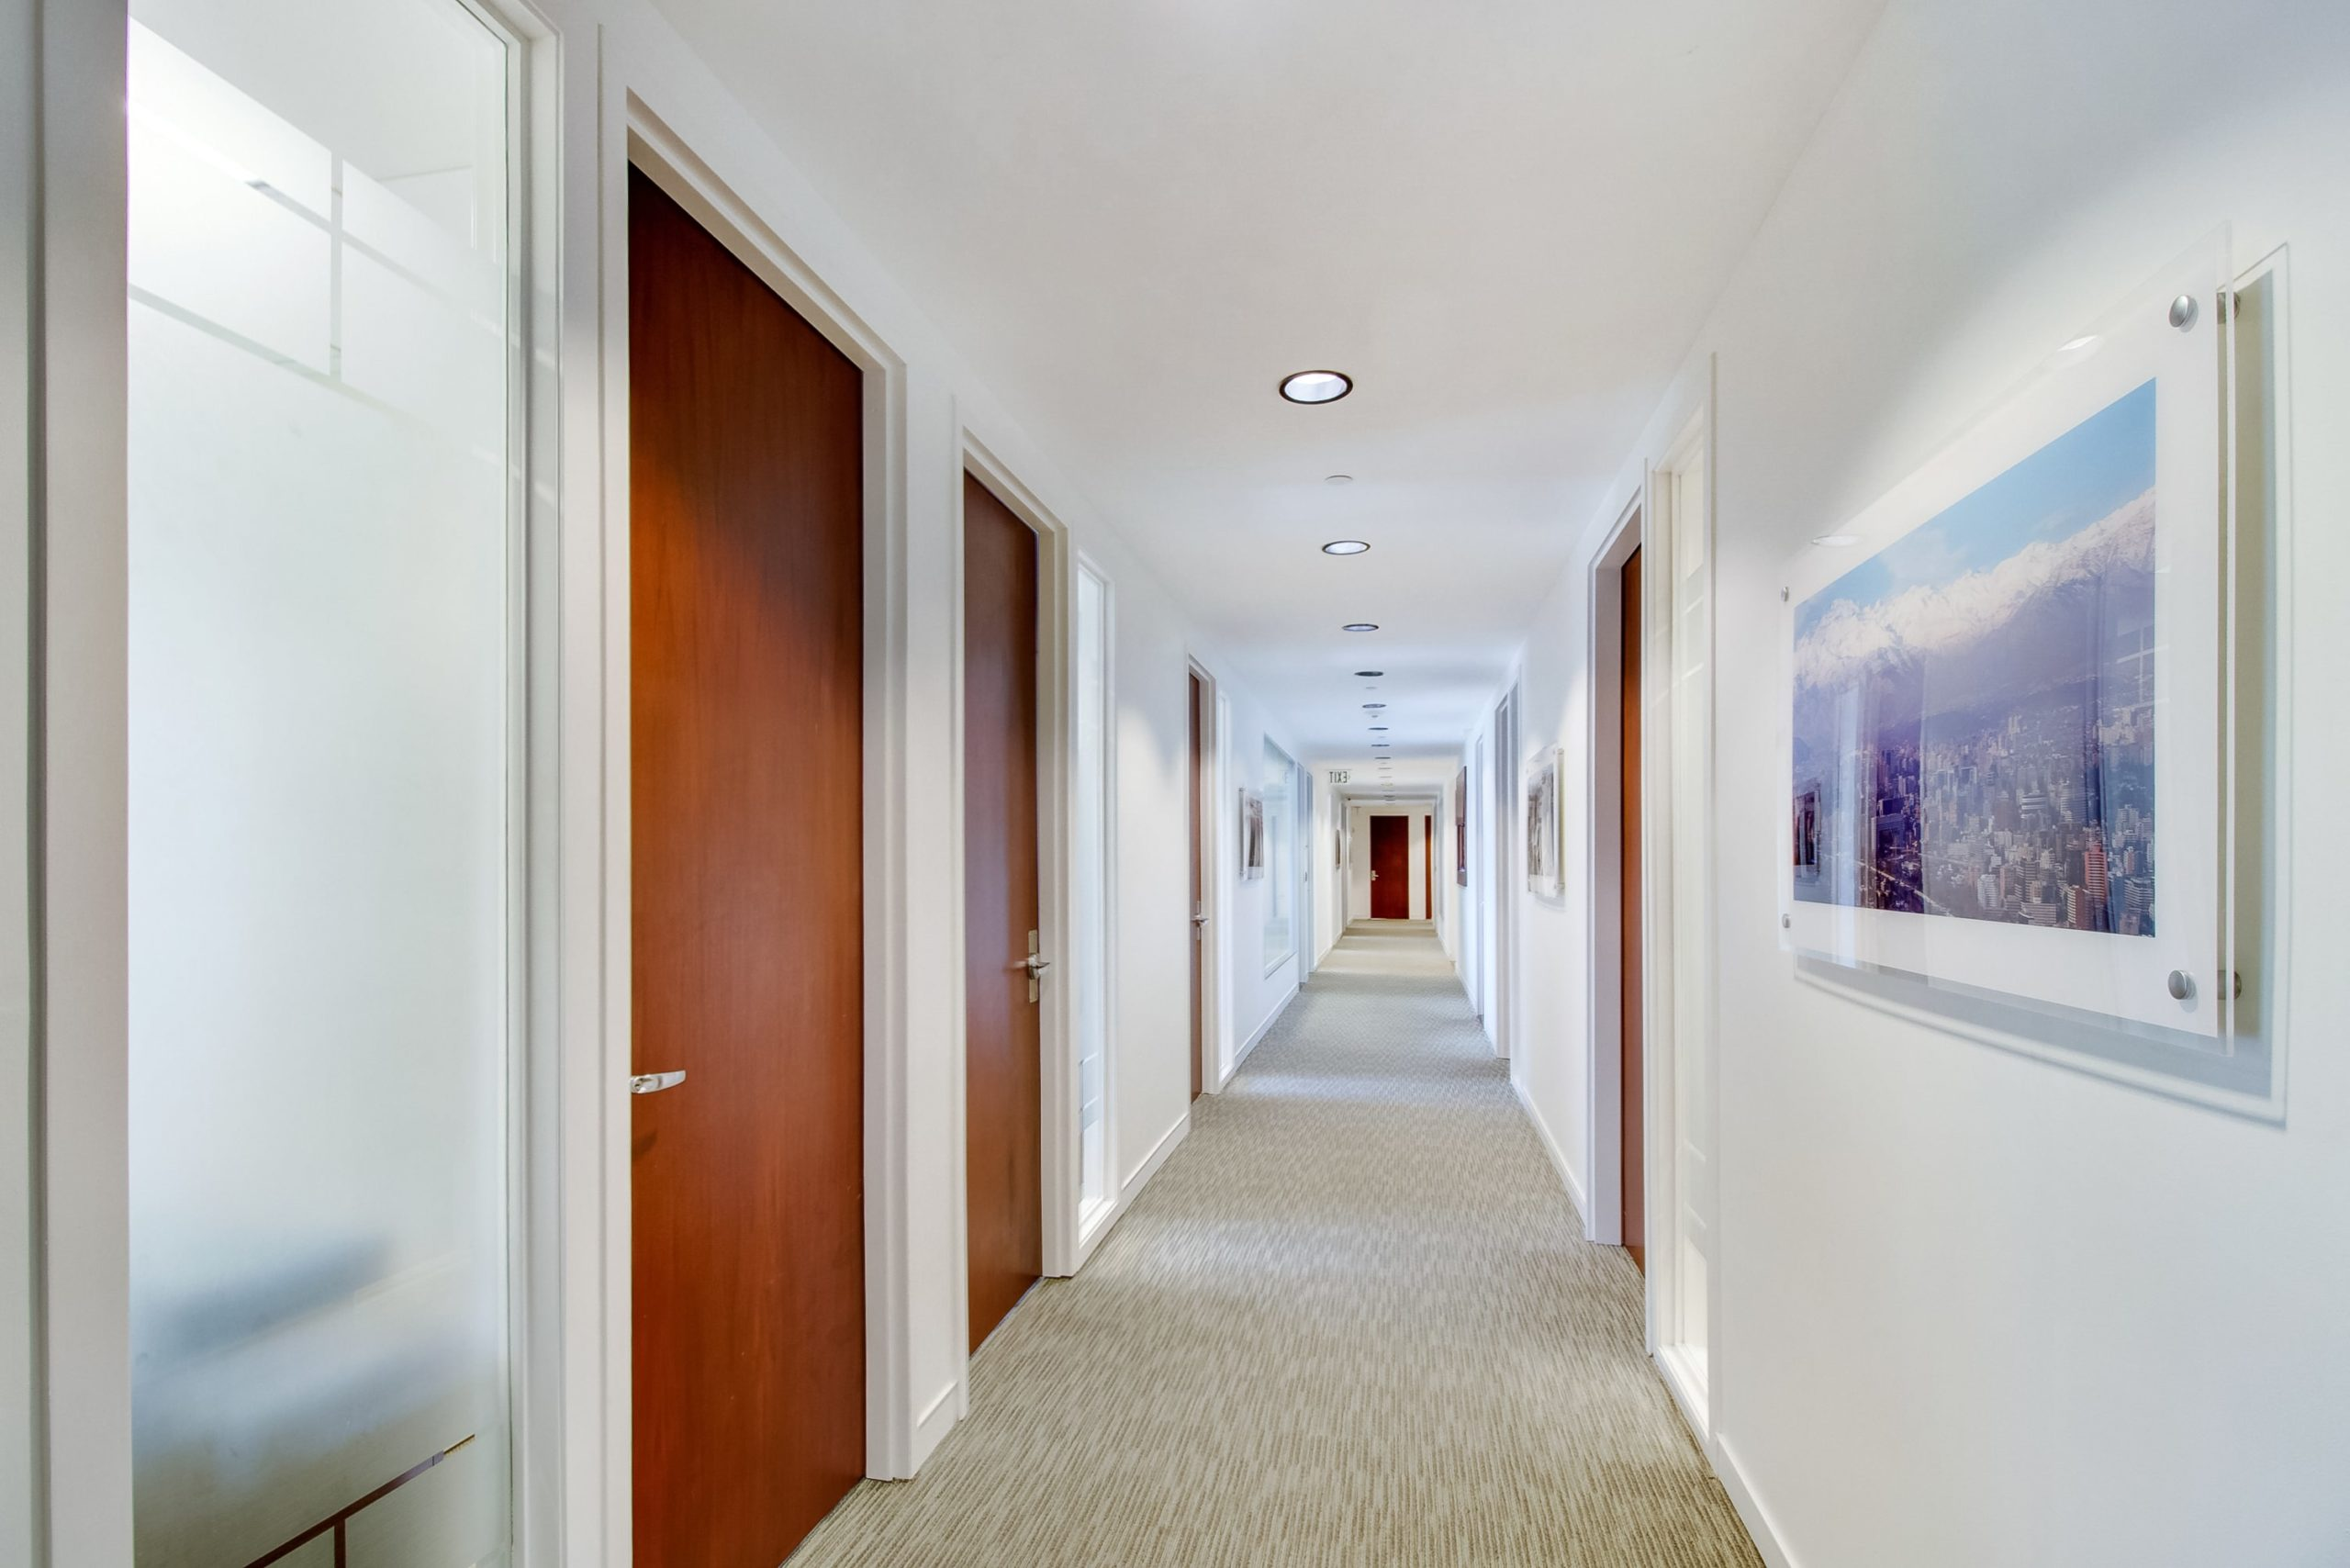 Miami Virtual Office Space - Comfortable Commons Area